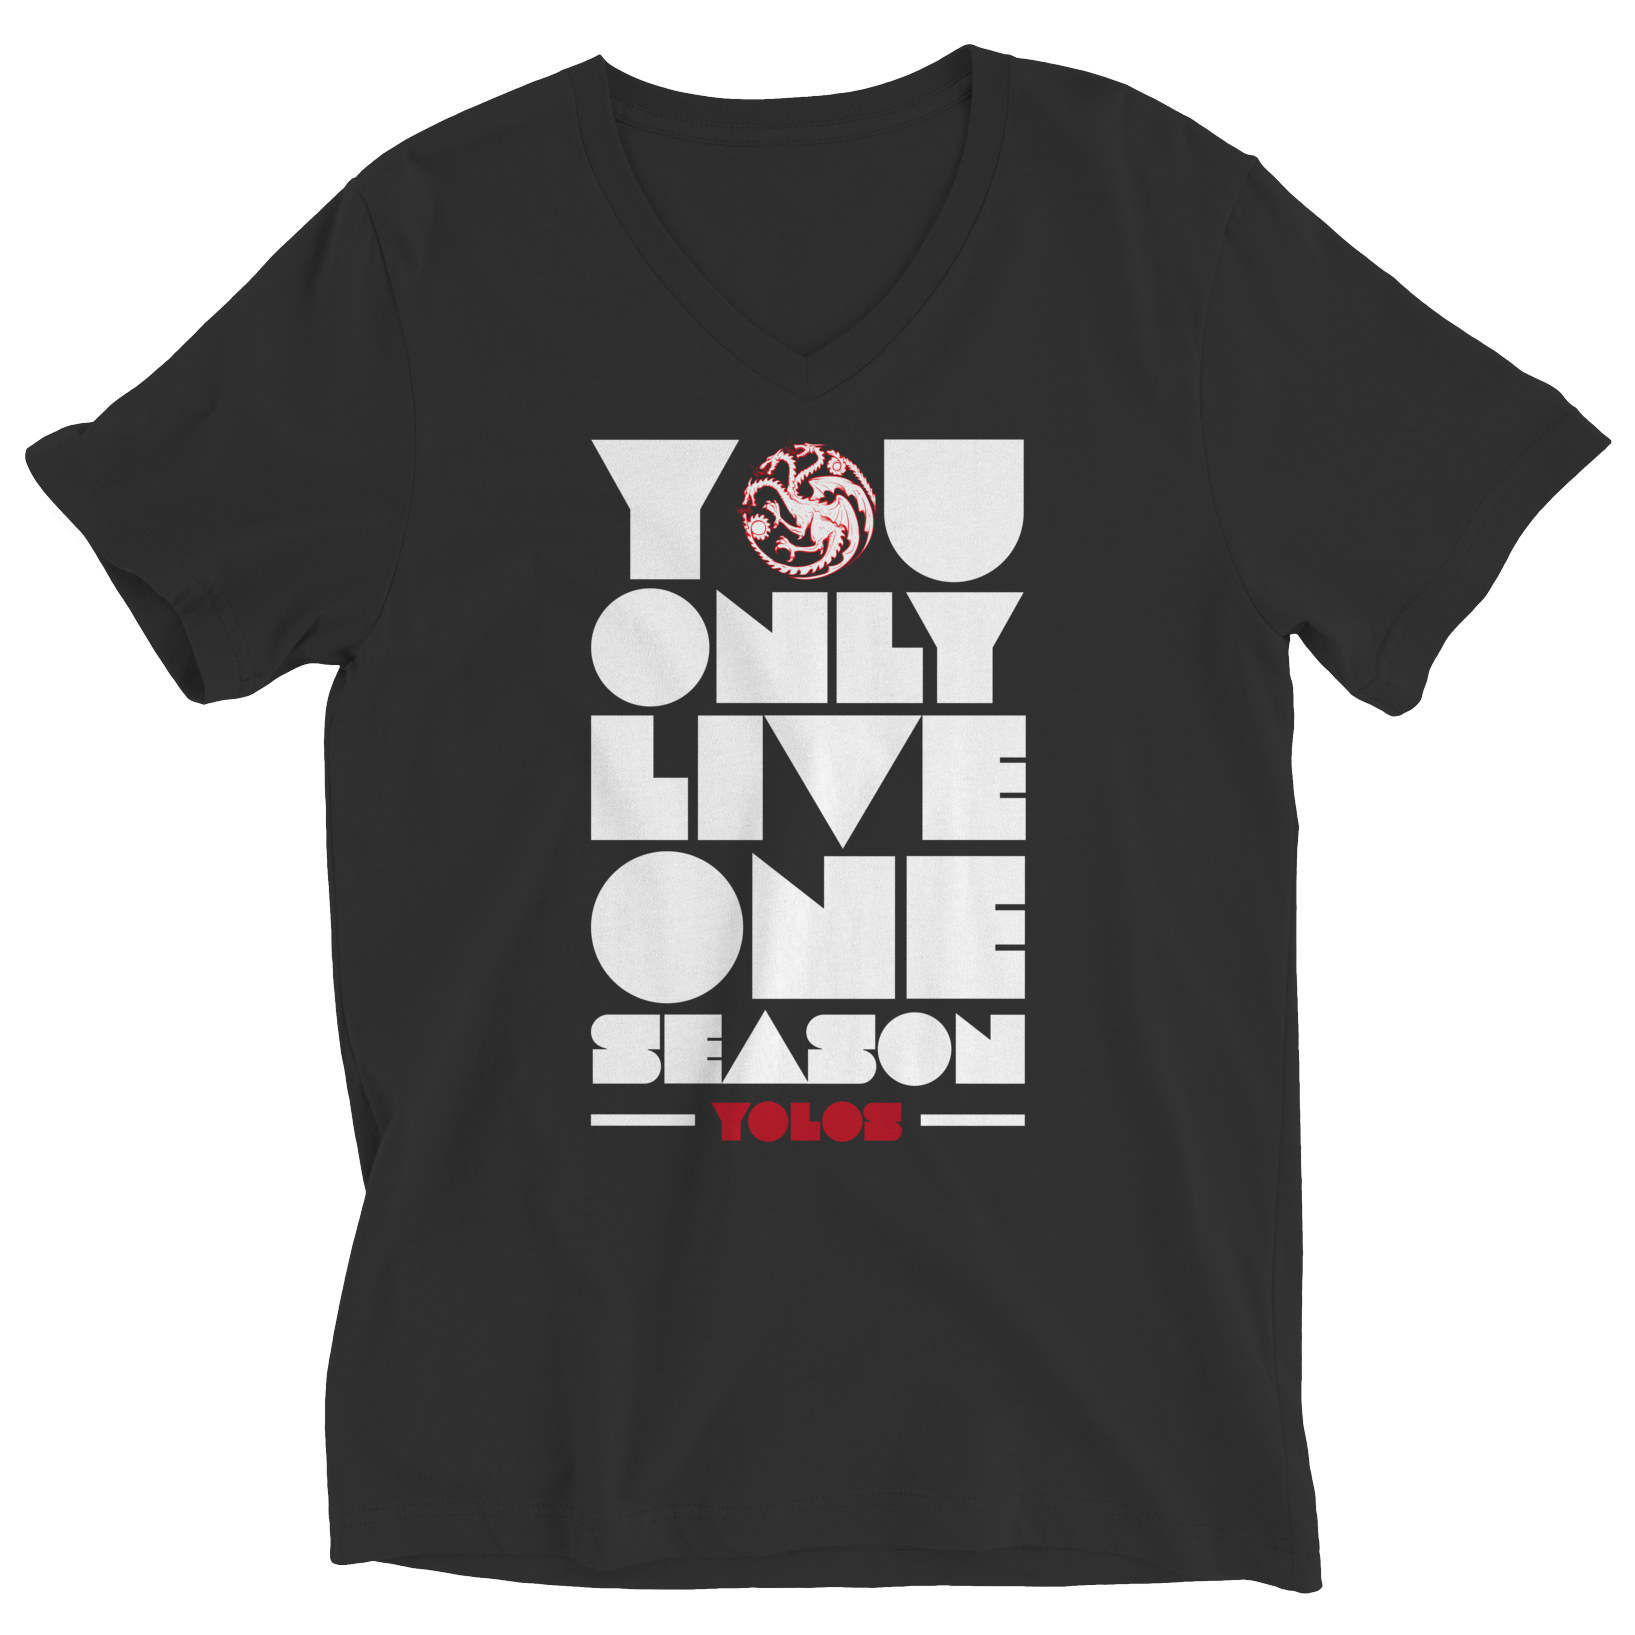 You Only Live One Season - YOLOS